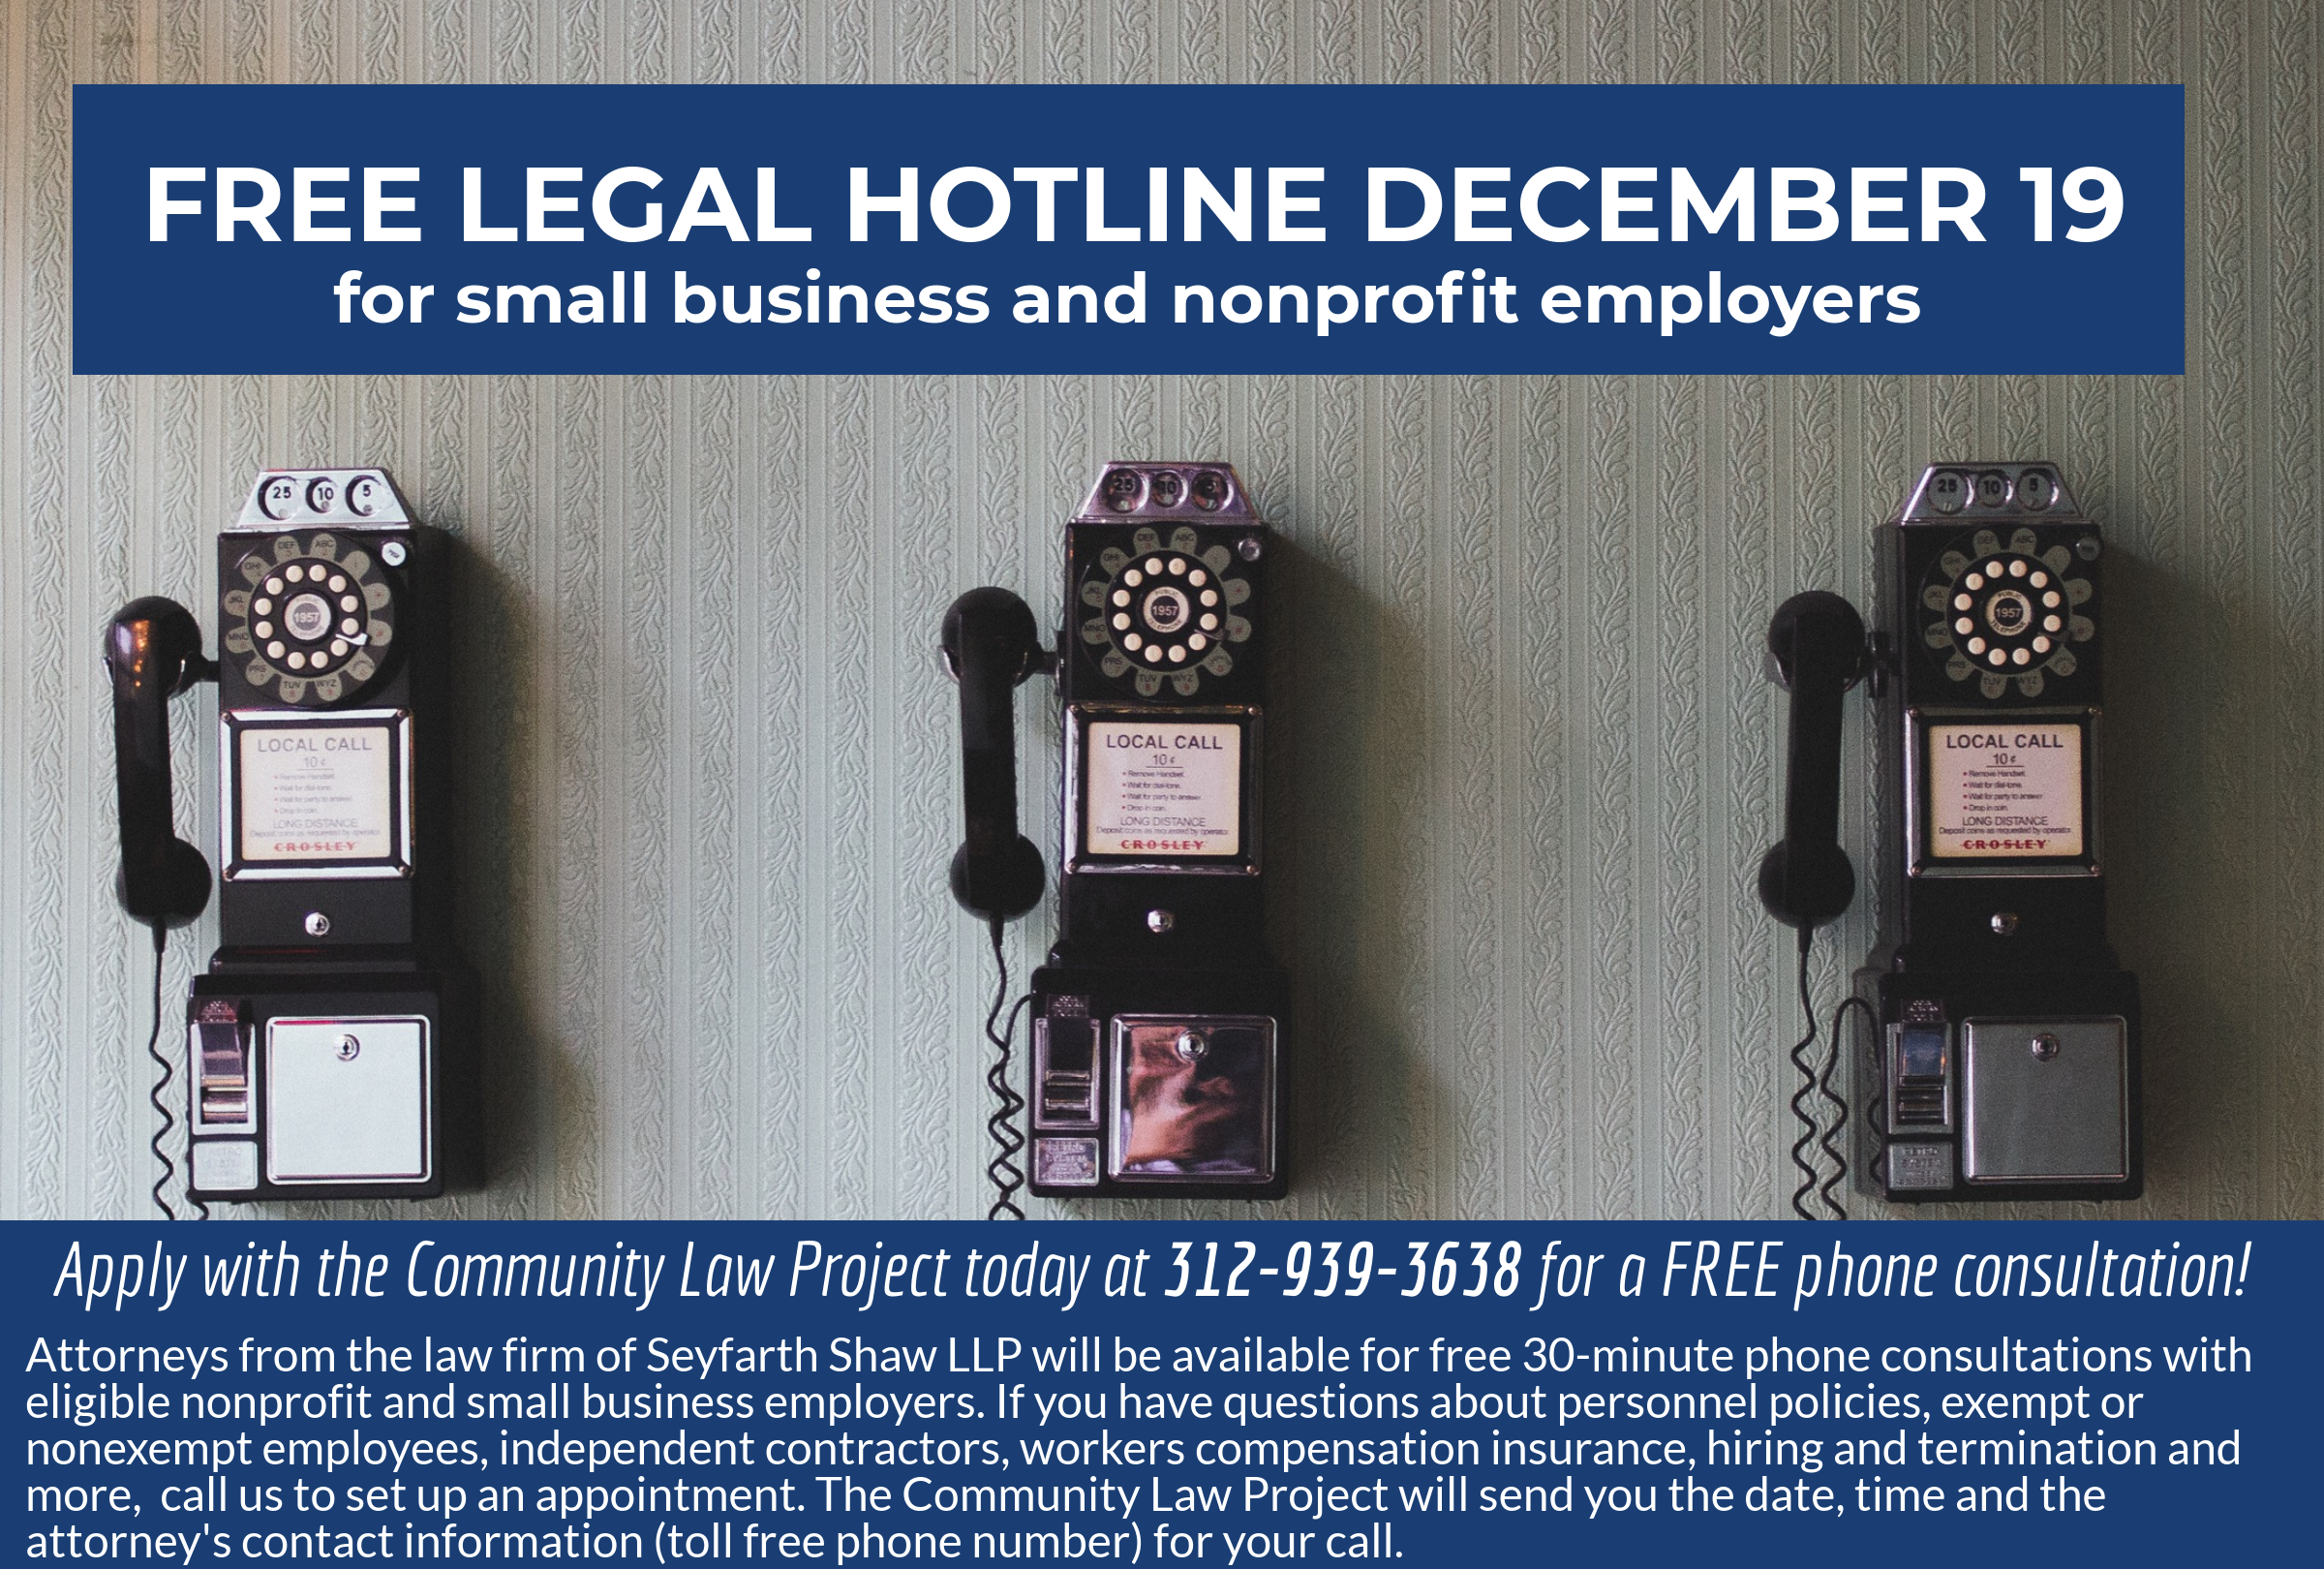 2018-12-19 employer hotline.png